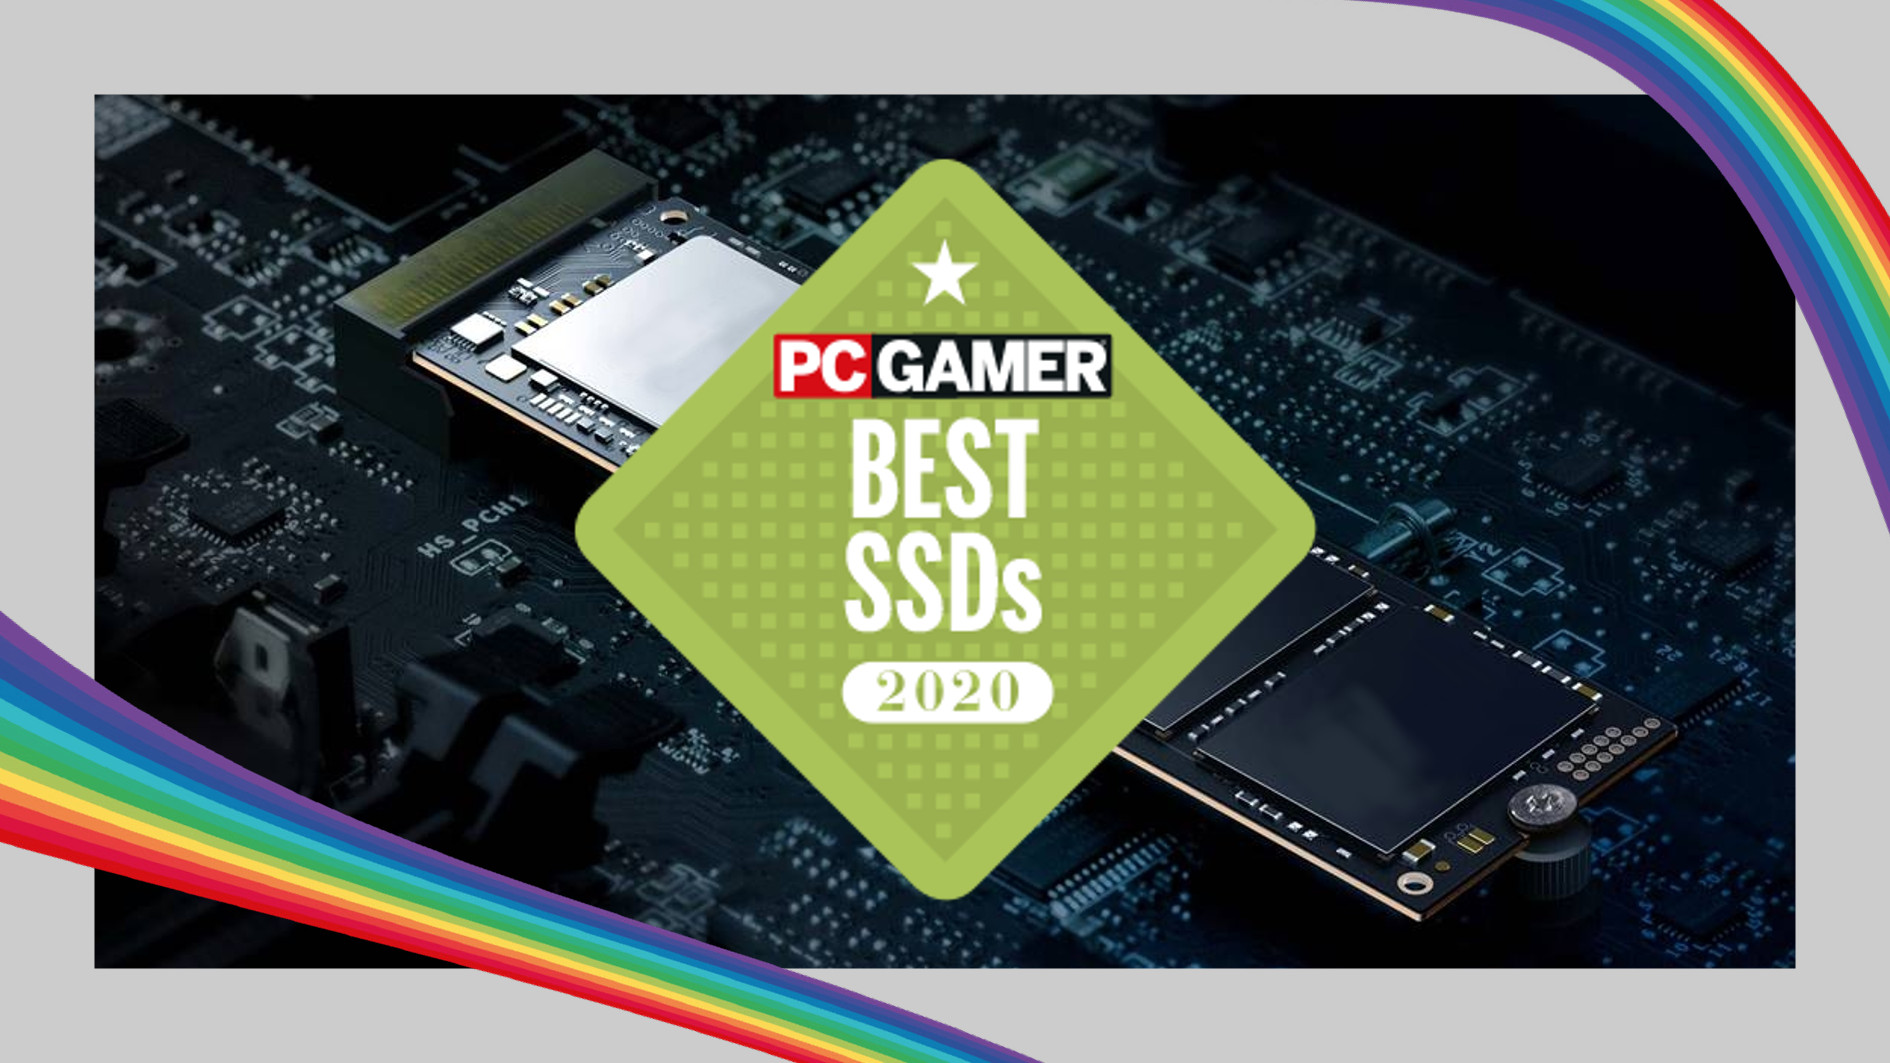 PC Gamer Hardware Awards: What is the best SSD of 2020?